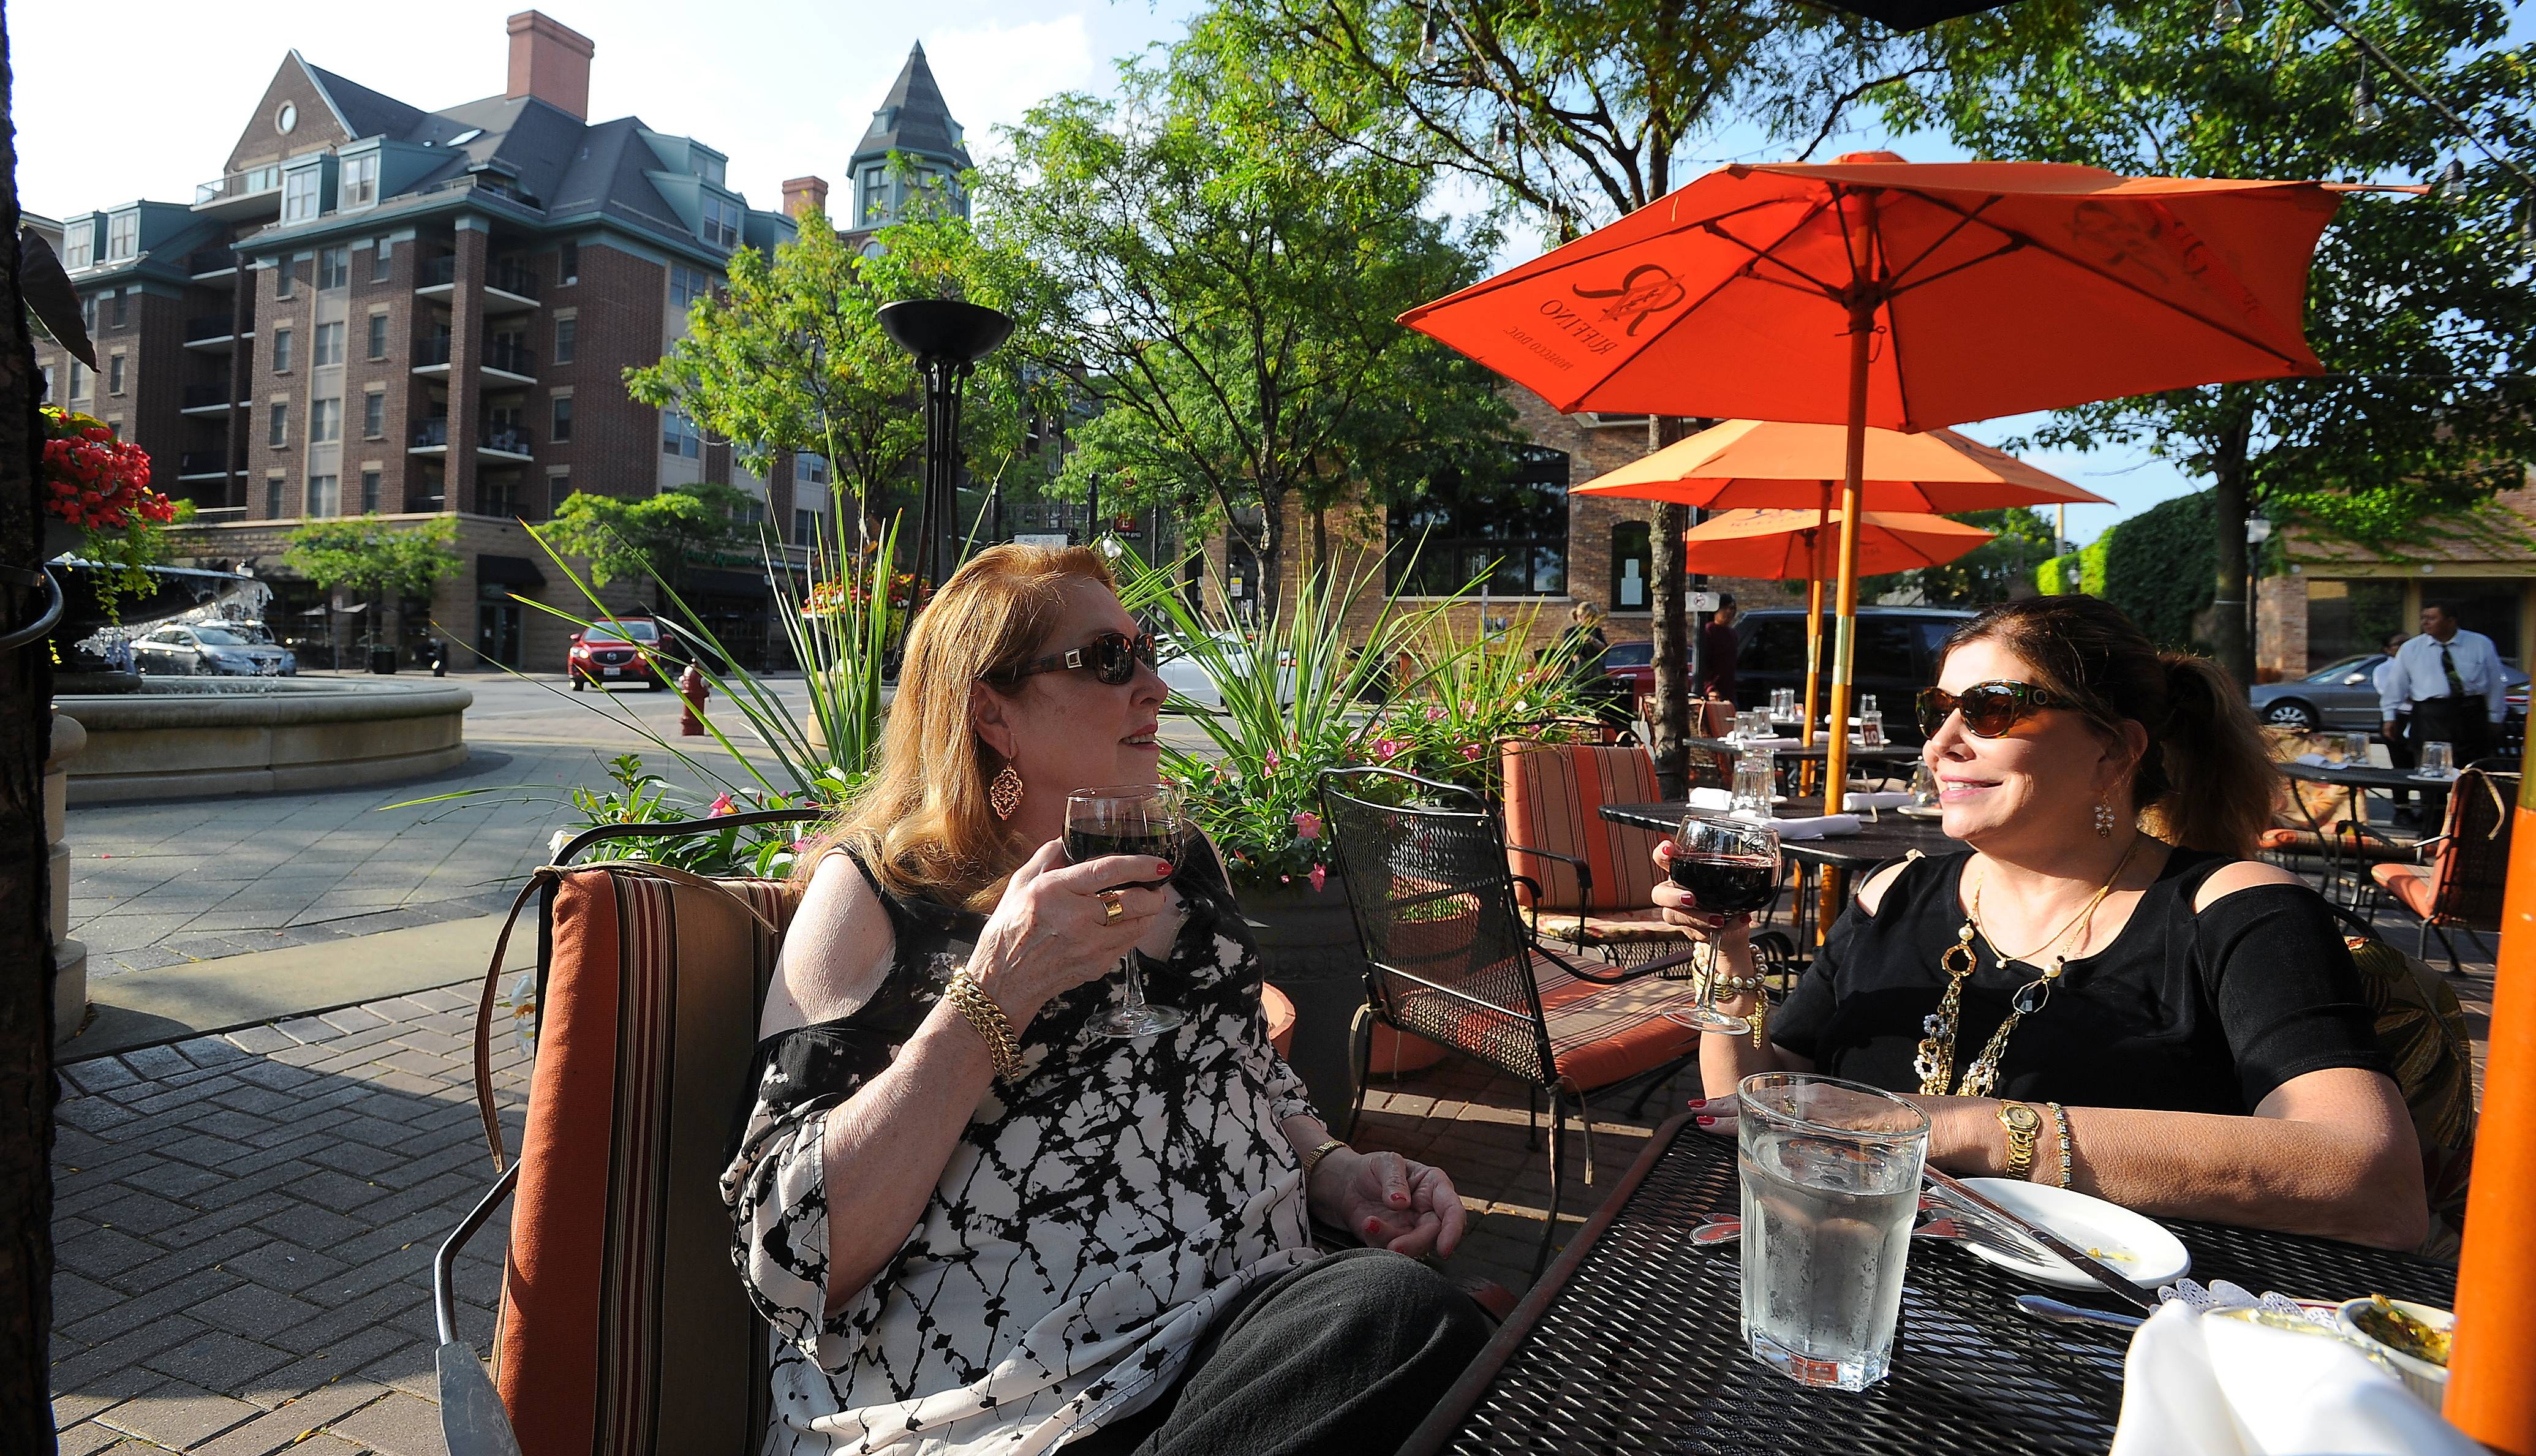 Karen Valdes of Hawthorn Woods, left, and her friend Michelle Downie of Oklahoma enjoy eating al fresco in downtown Arlington Heights.